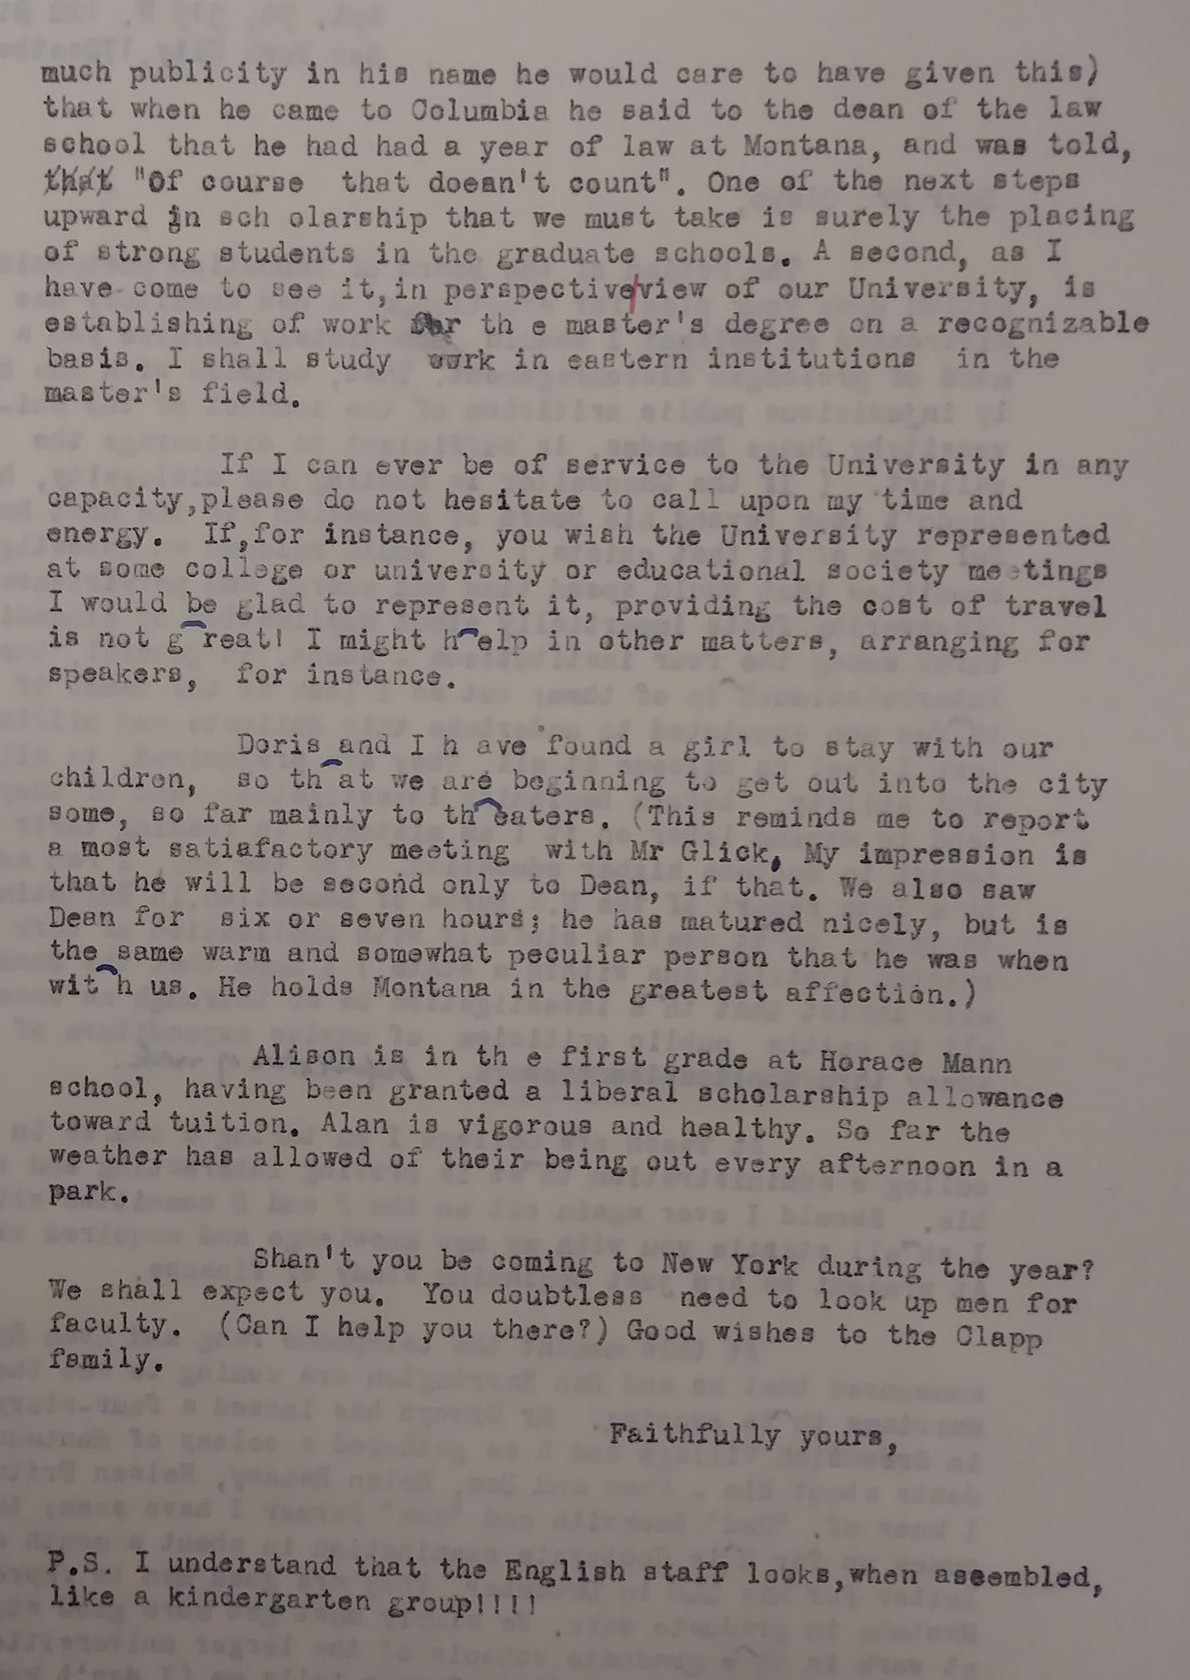 A 1942 letter comparing the English faculty to kindergarteners